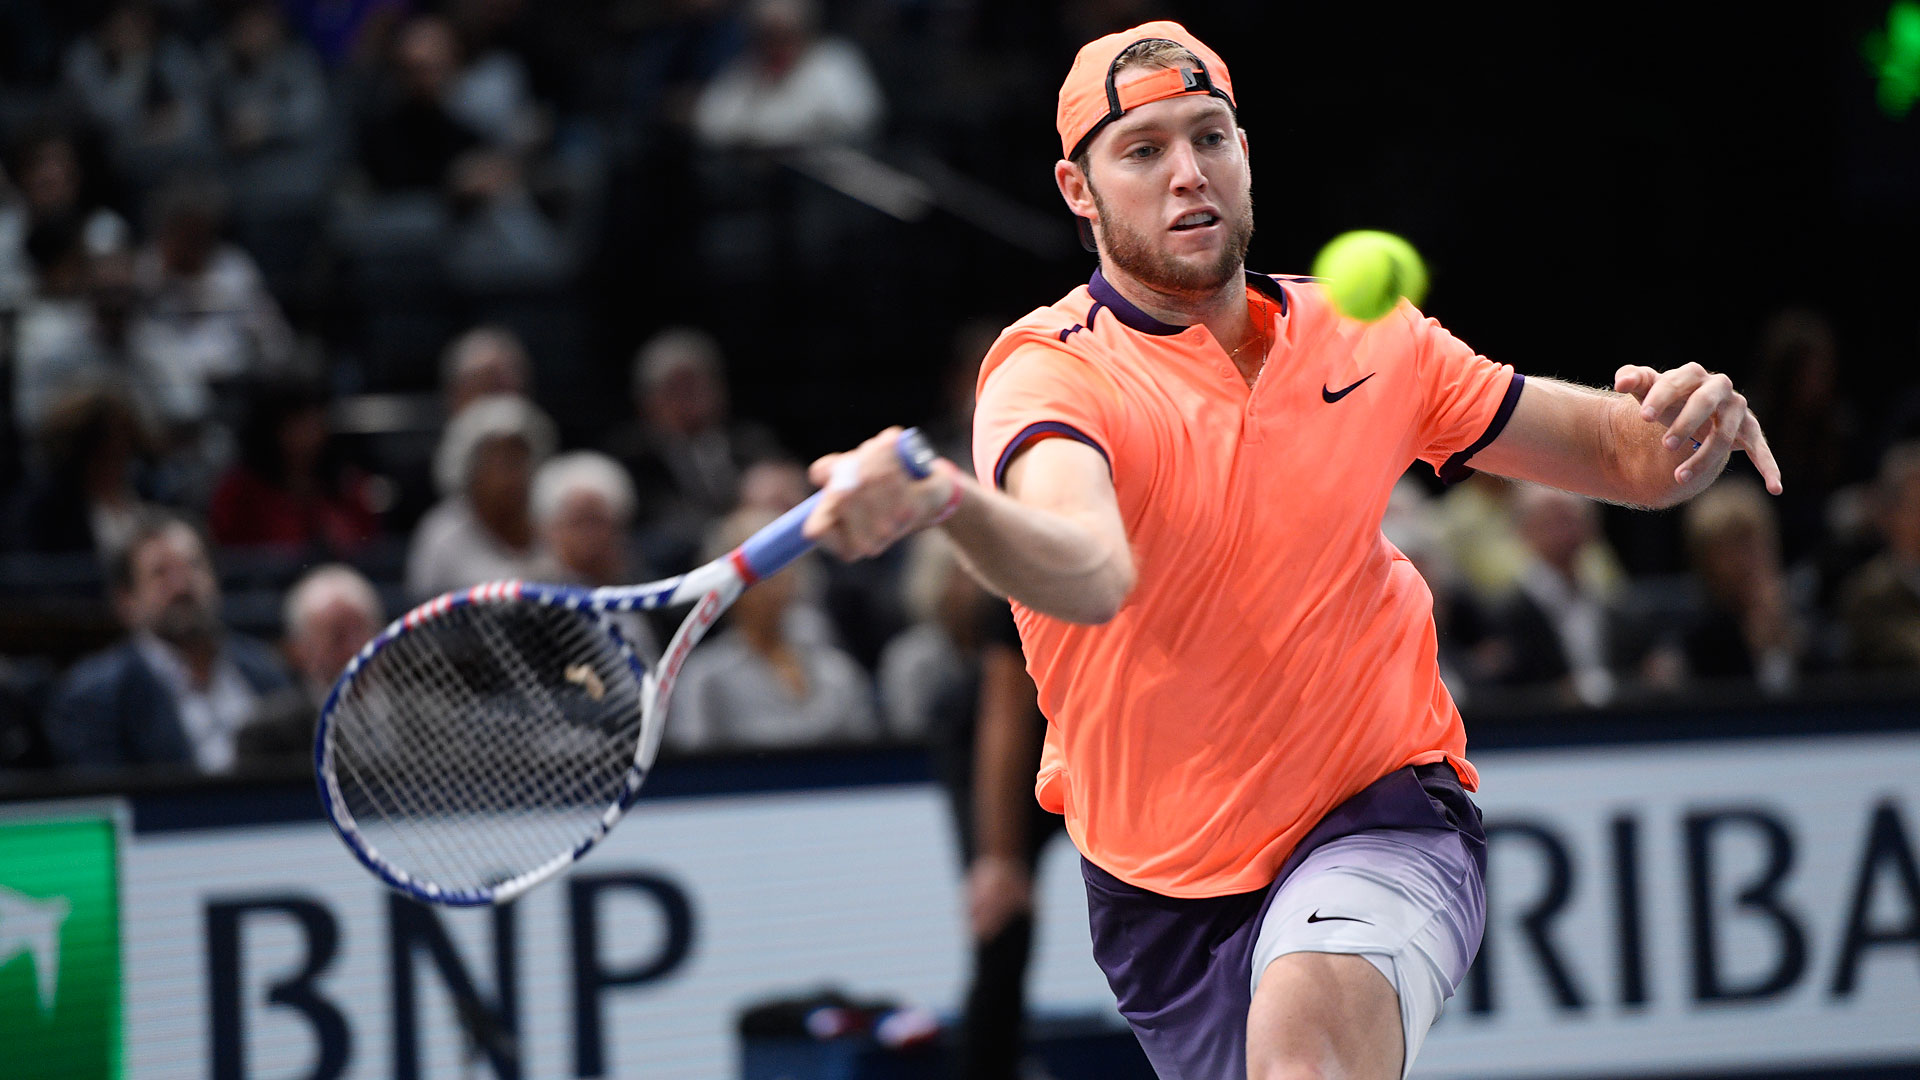 Jack Sock impressed the crowd with his sportsmanship at the BNP Paribas Masters.